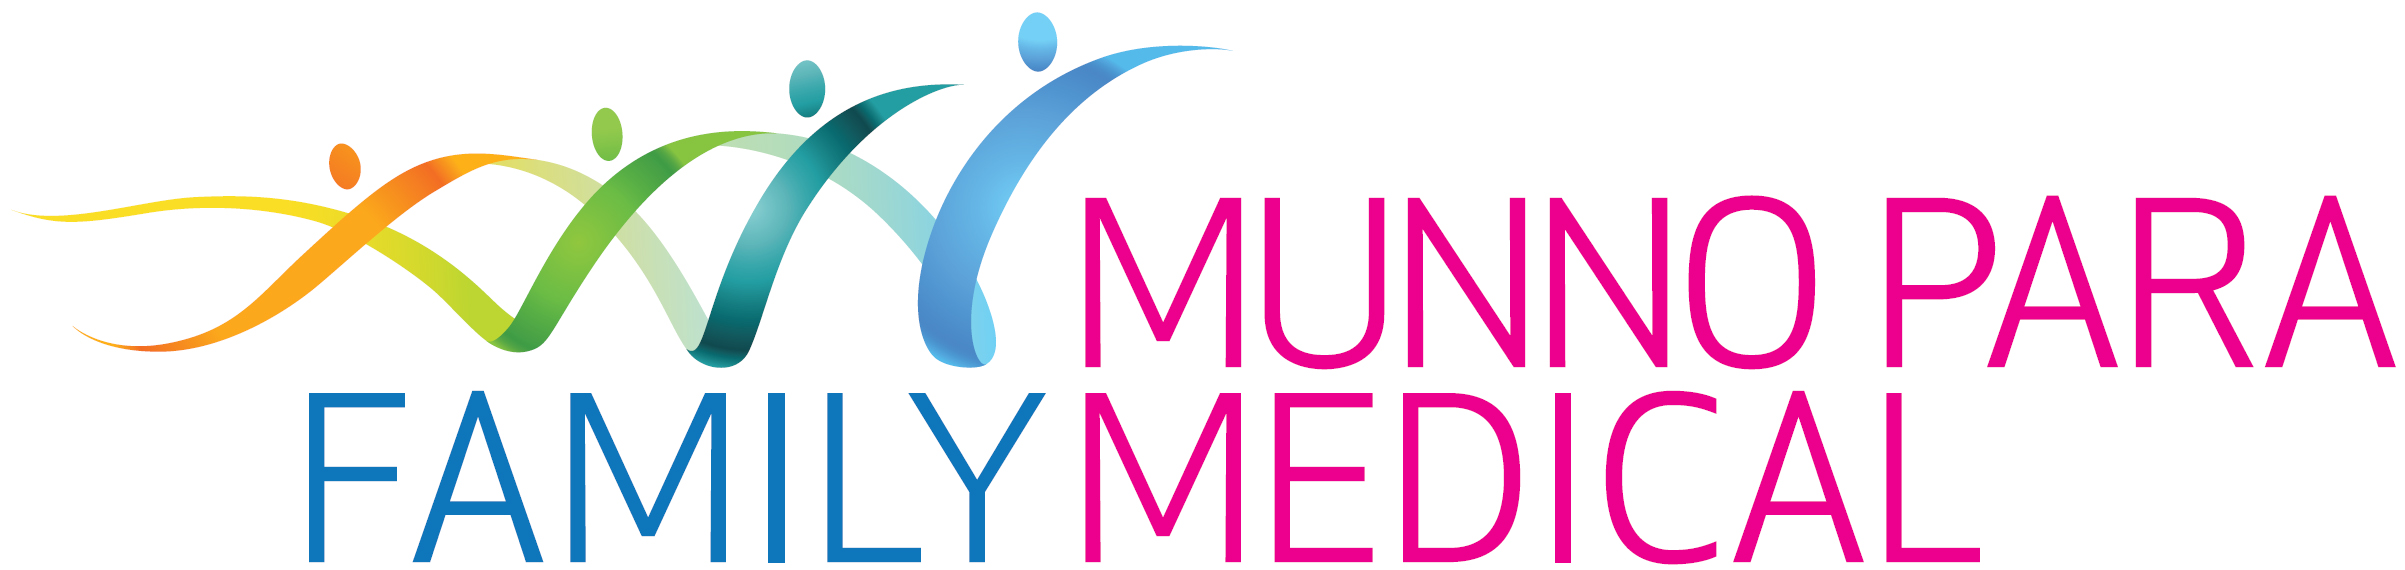 Munno Para Family Medical